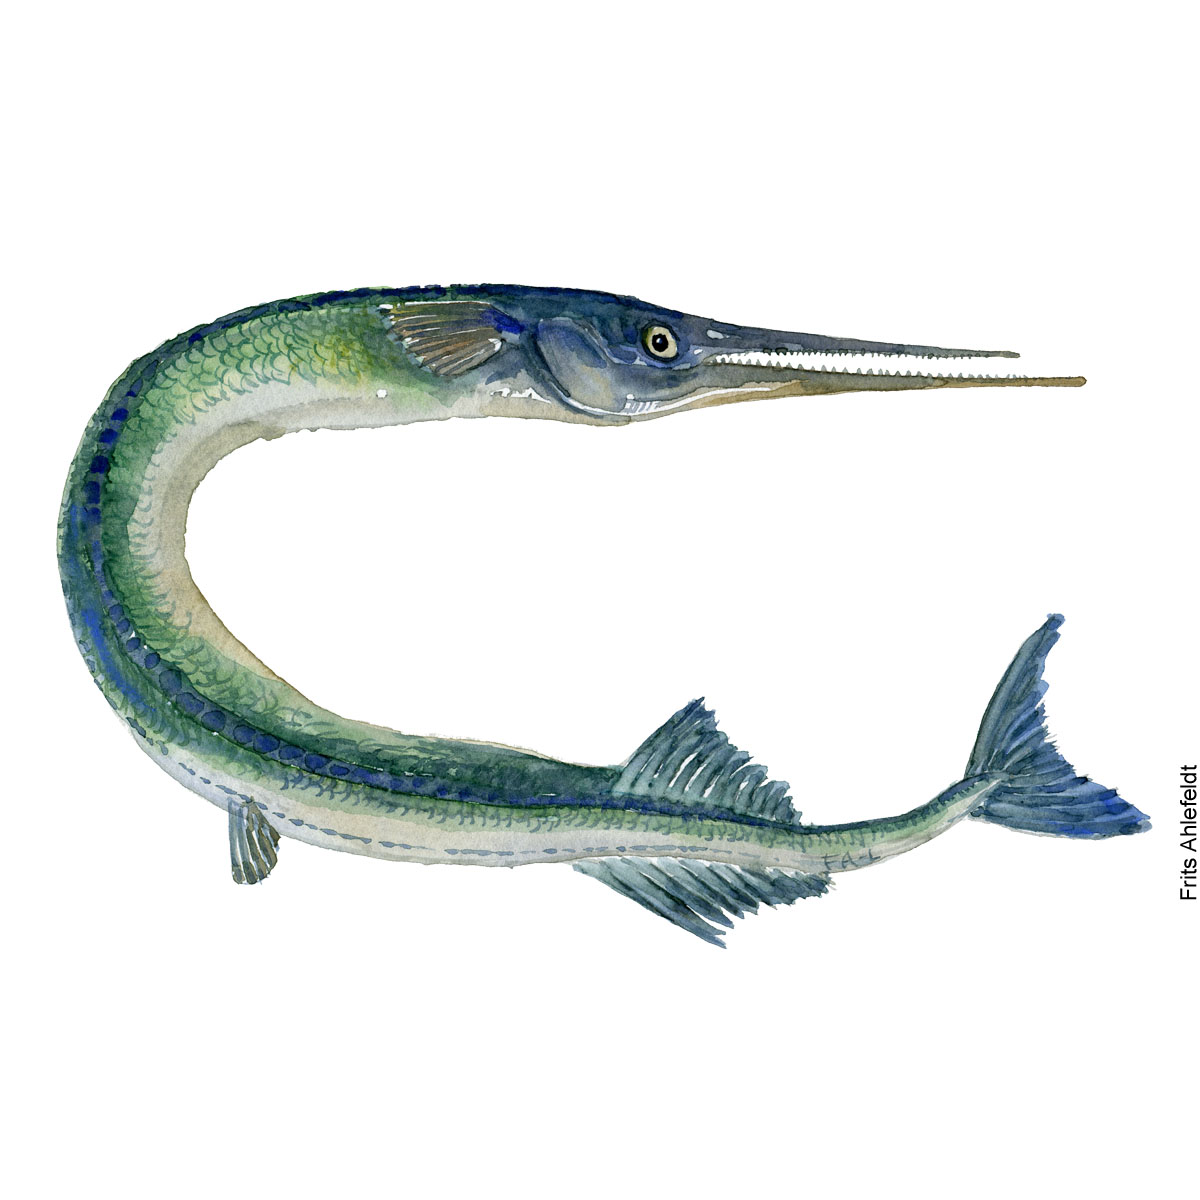 Hornfisk - Garfish - Fish watercolor painting by Frits Ahlefeldt